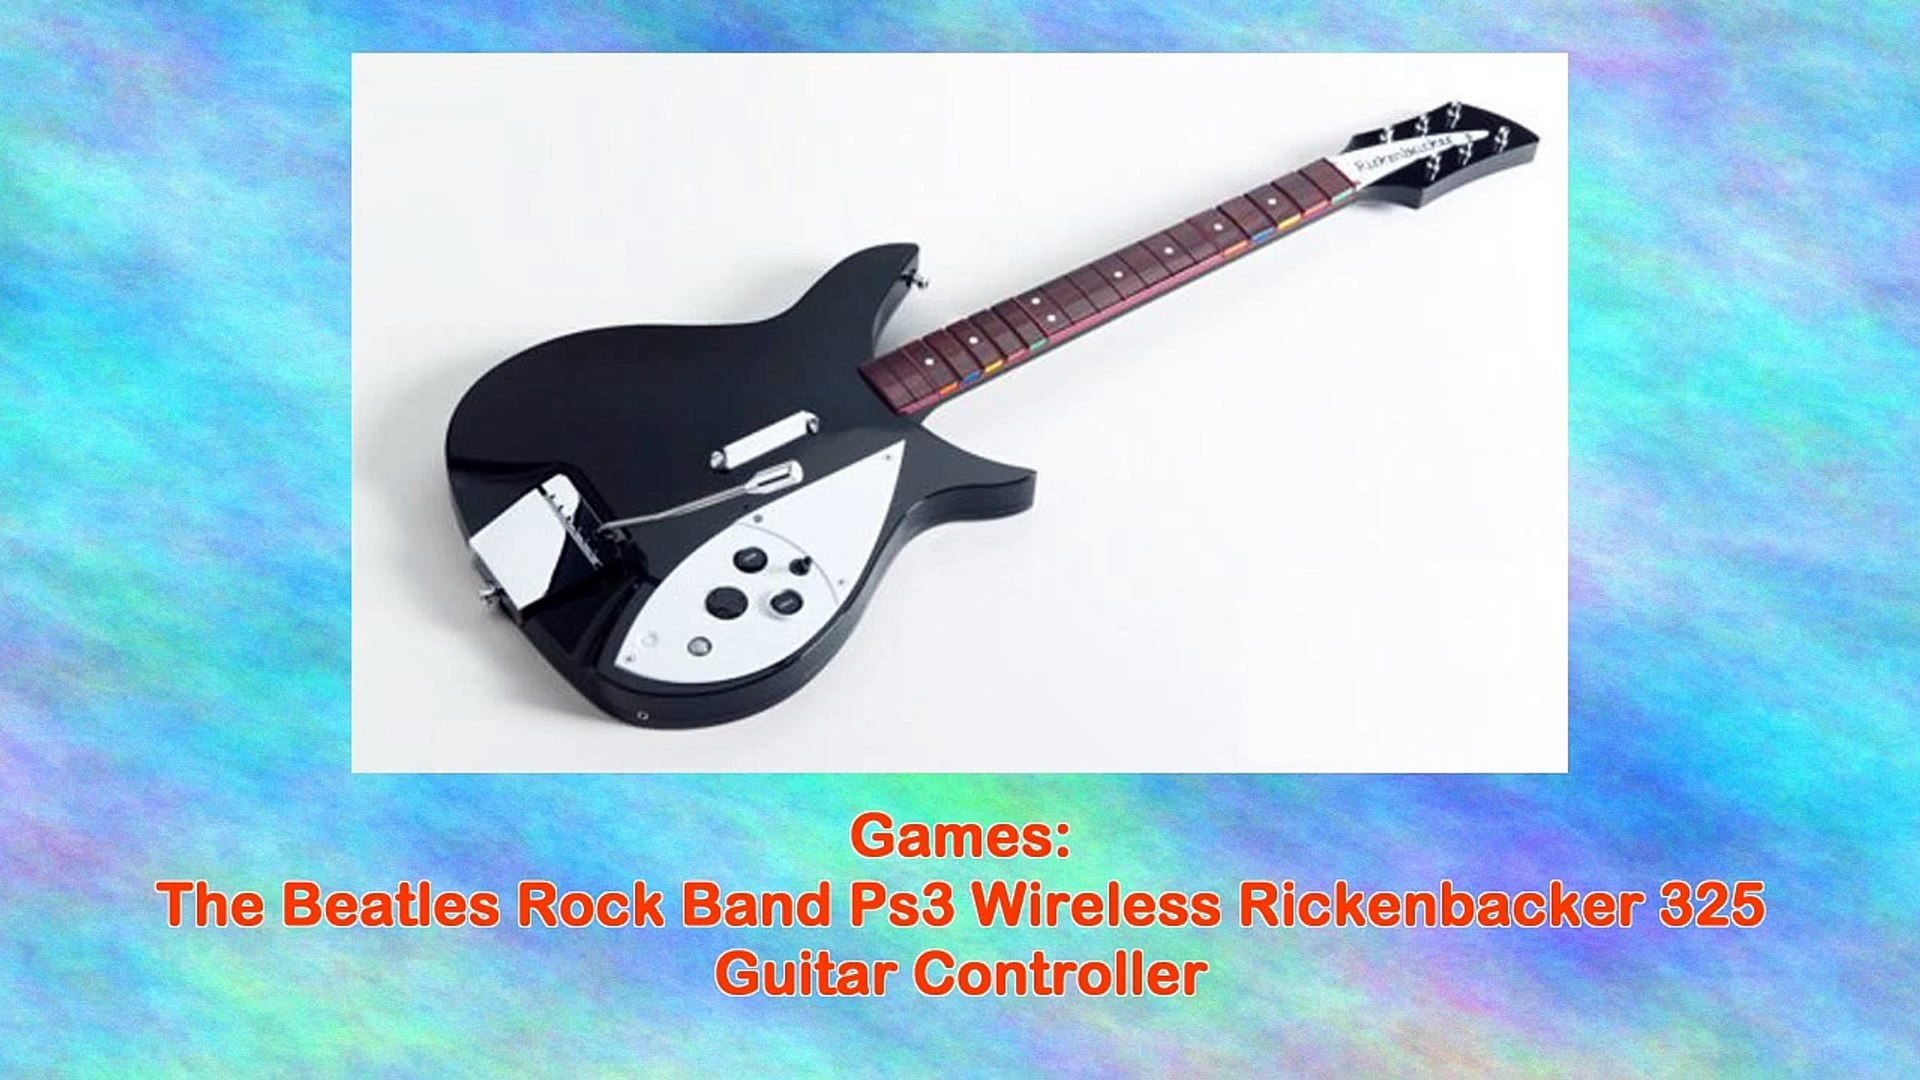 The Beatles Rock Band Ps3 Wireless Rickenbacker 325 Guitar Controller